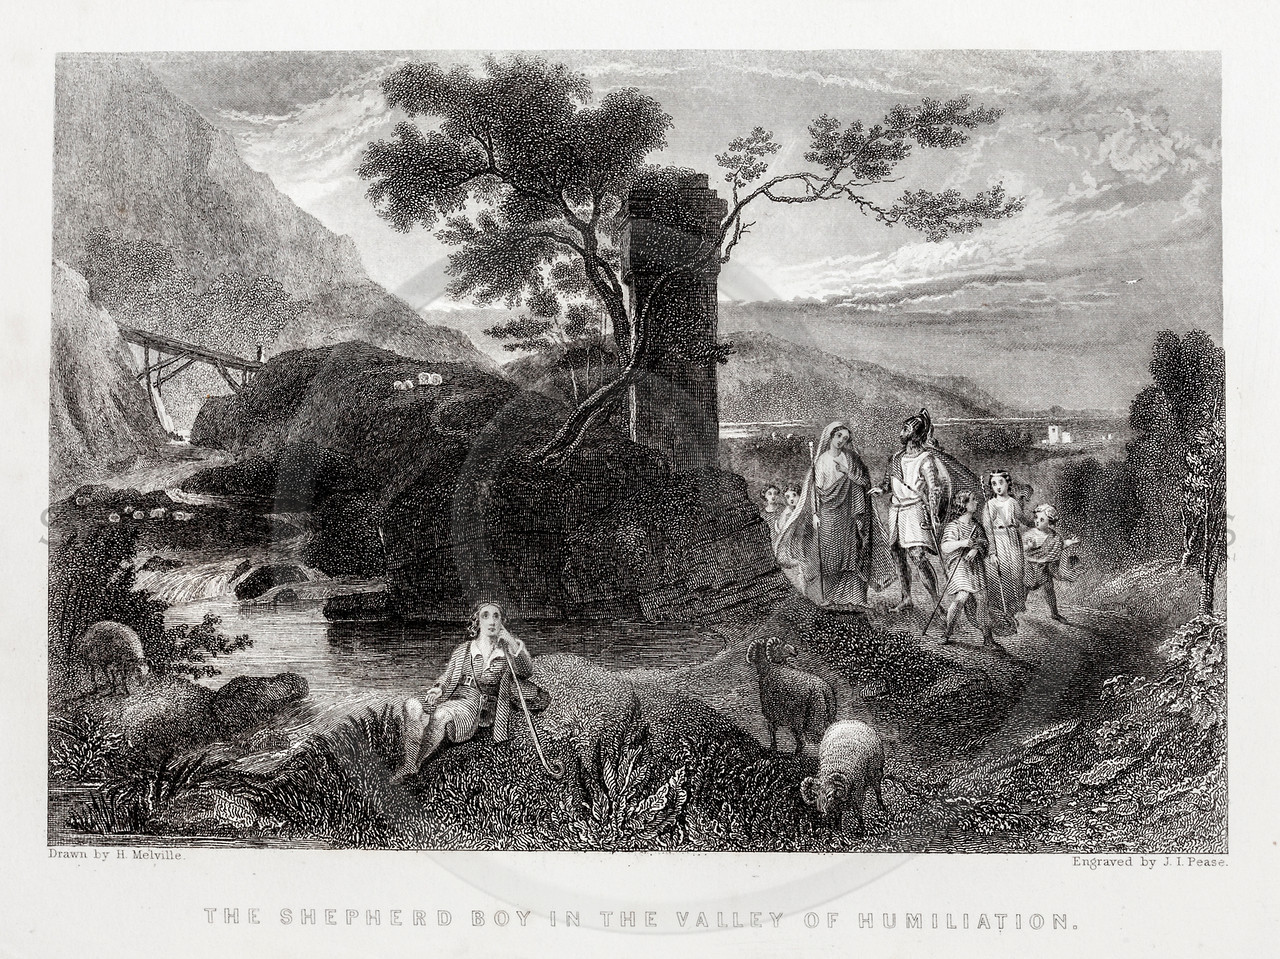 Vintage 1800s Steel Engraving Illustration of a Shepherd in a Valley from BUNYAN'S PILGRIM'S PROGRESS by John Bunyan.  The natural patina, age-toning, imperfections, and old paper antiquing of this vintage 19th century illustration are preserved in this image.